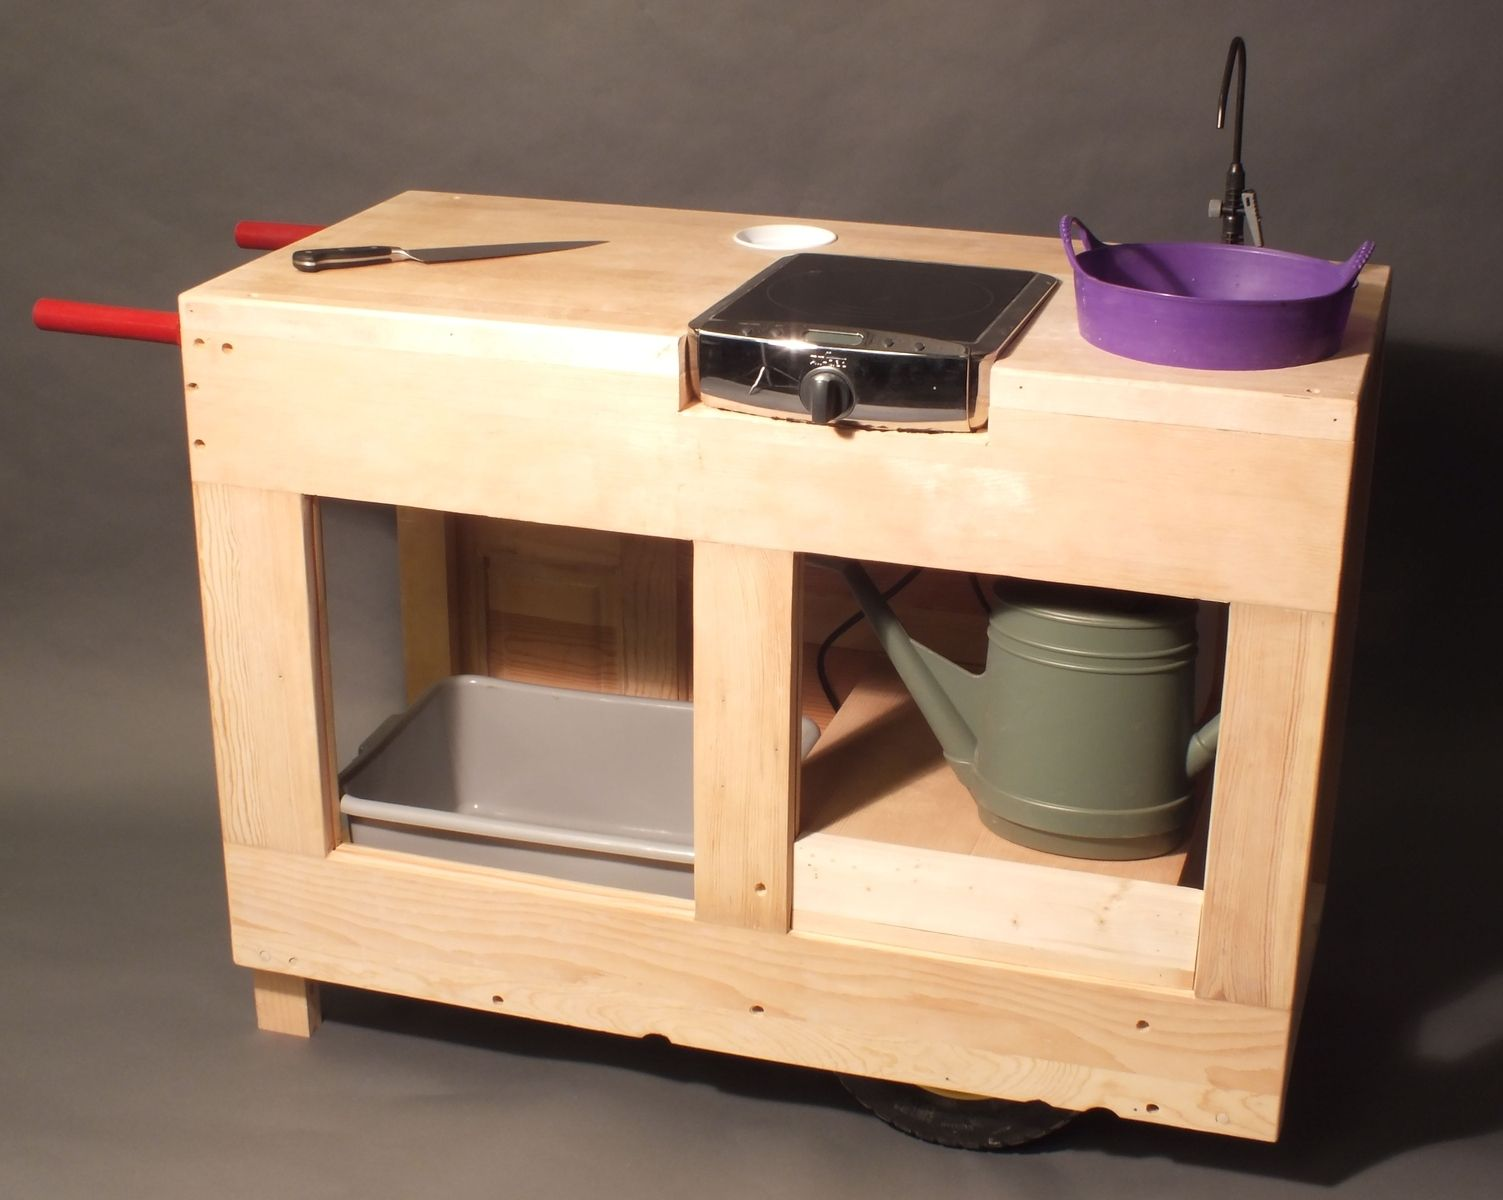 Handmade Custom Wooden Mobile Kitchen Cart by Dysart Design ...